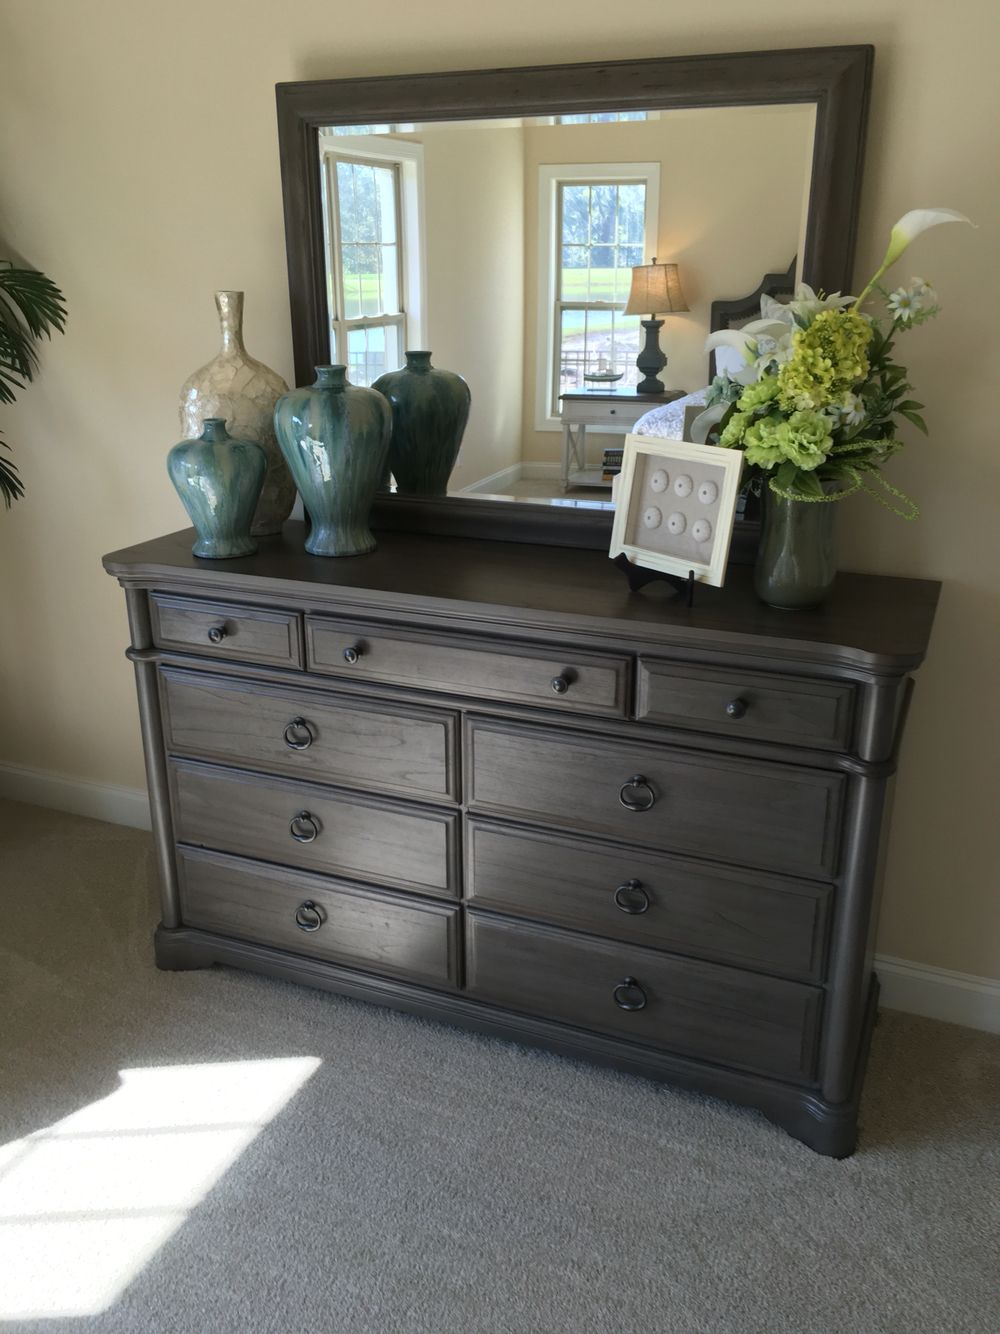 How to stage a dresser  Bedrooms  Pinterest  Dresser Stage and Bedrooms